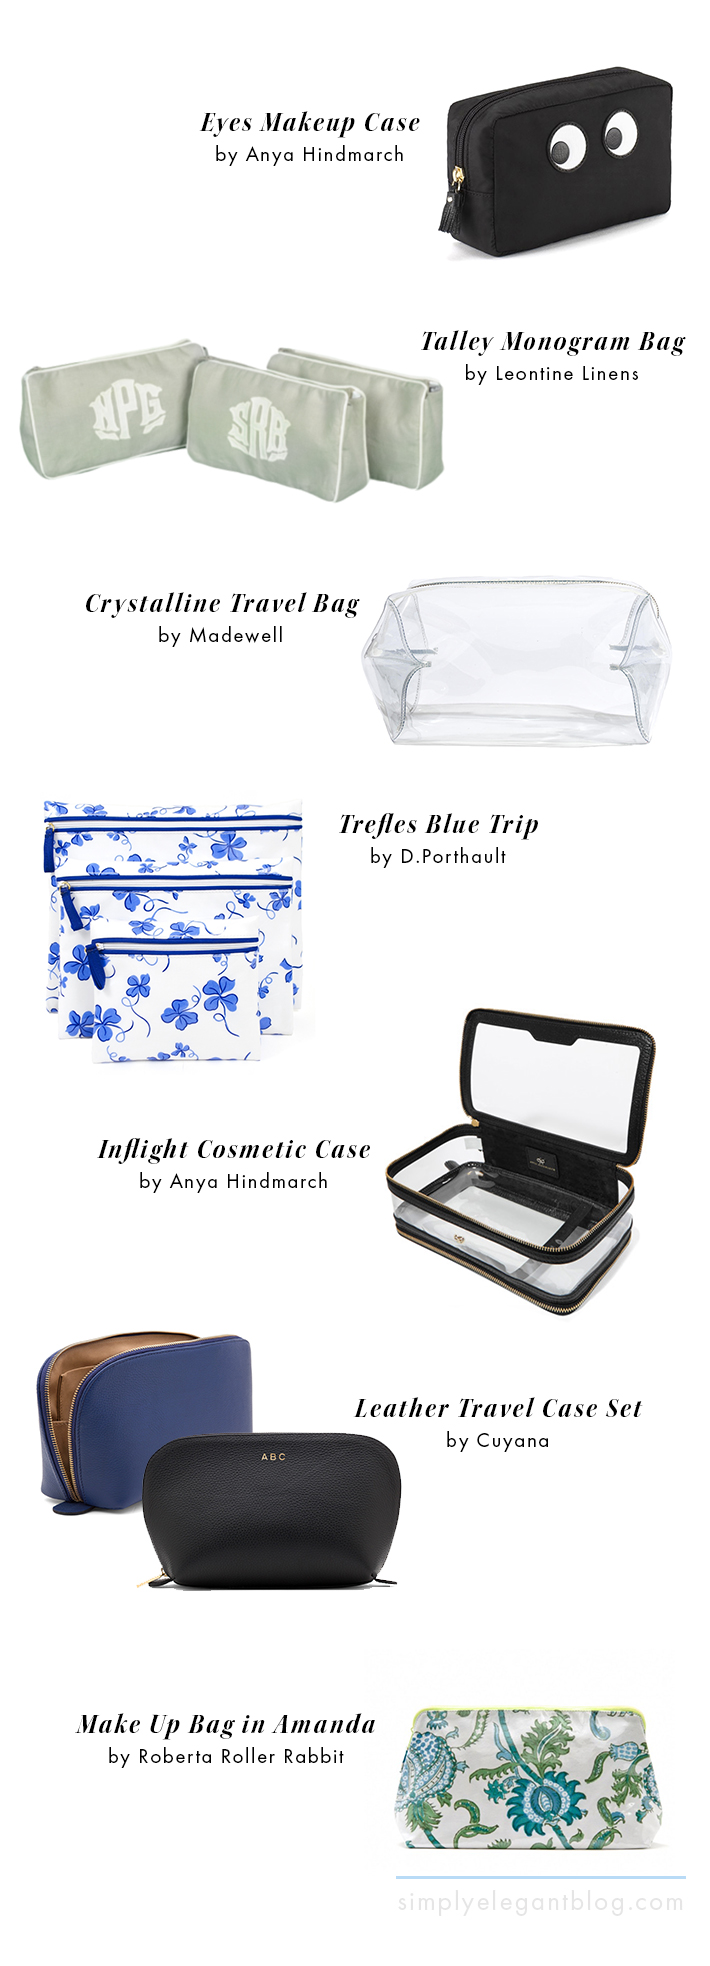 Best Make Up Bags and Cosmetic Cases.  Leontine Linens, Anya Hindmarch, D.Portault, Cuyana and Roberta Roller Rabbit.